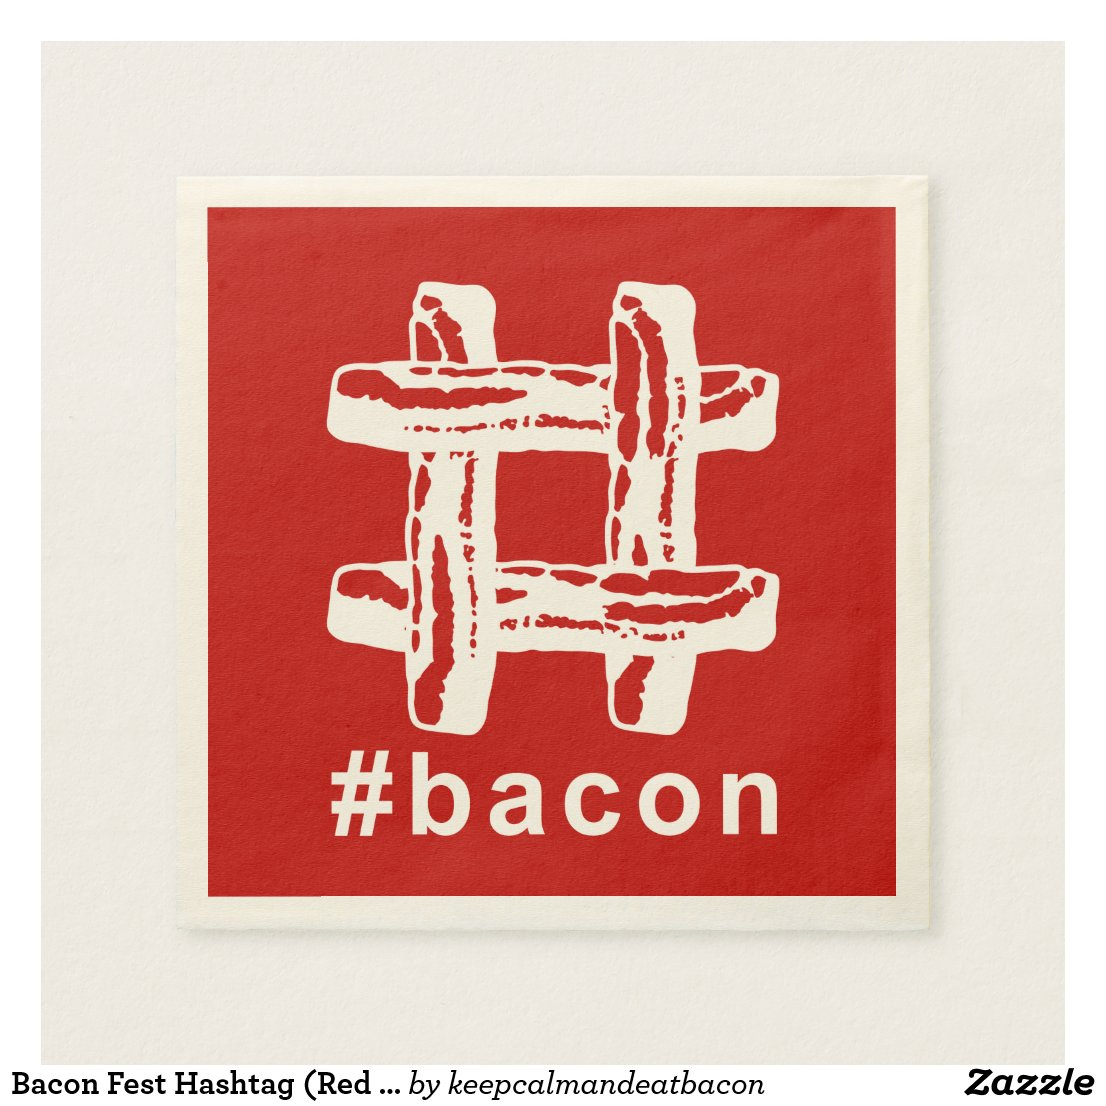 Bacon Fest Hashtag (Red Background) Napkin